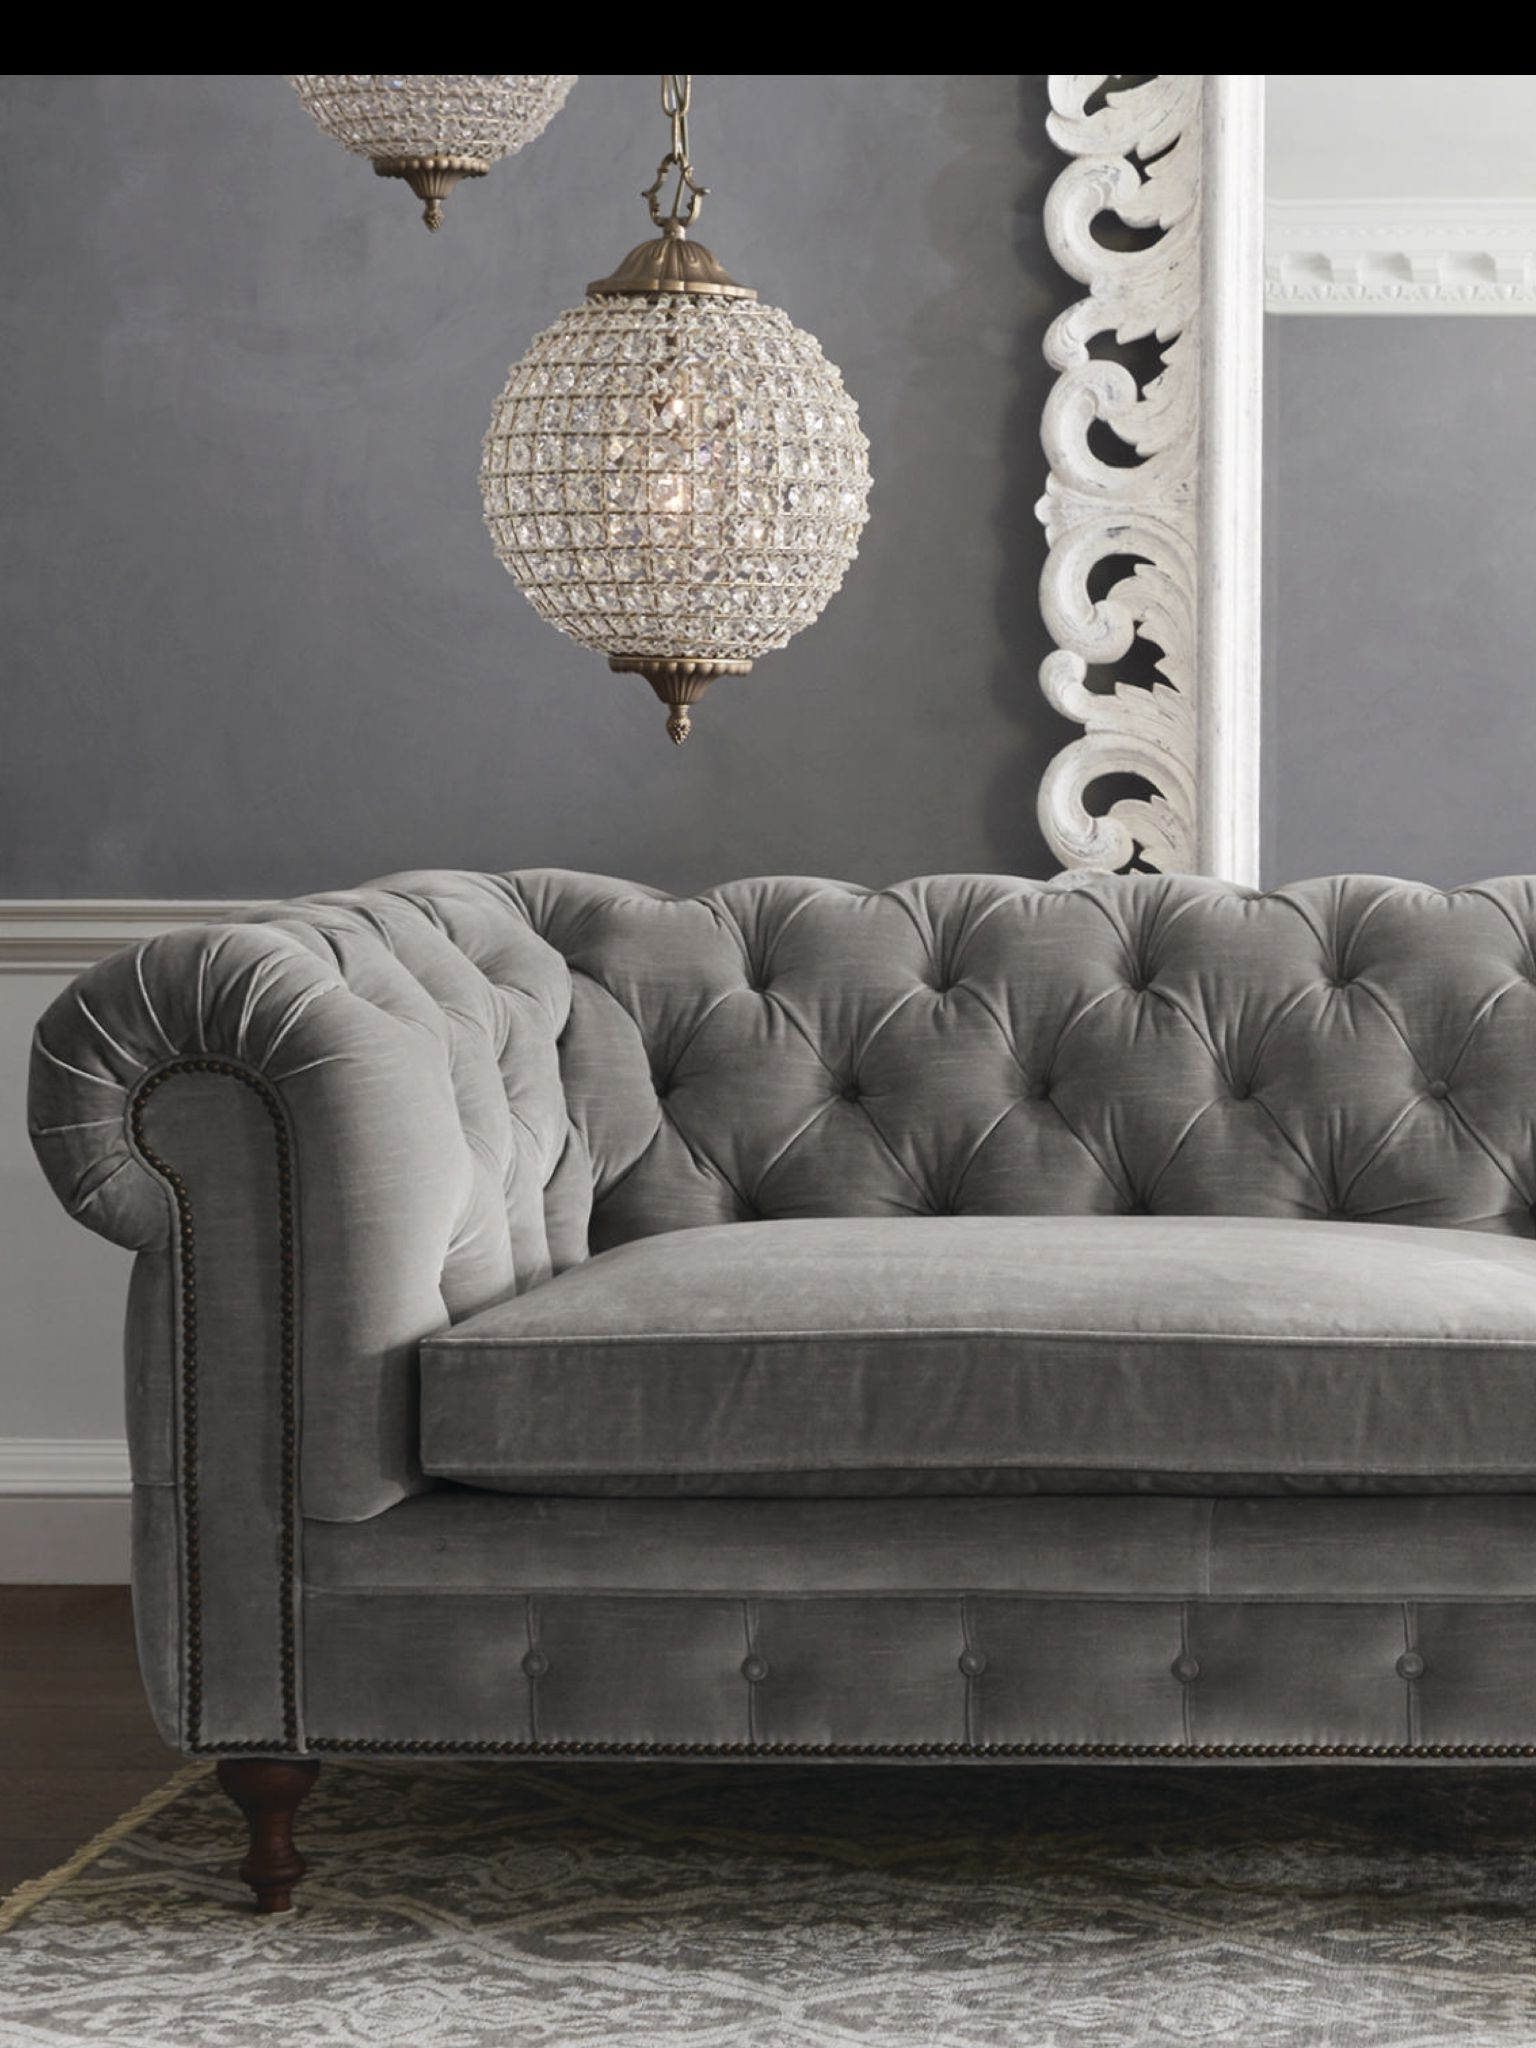 Sofa : Sleeper Sofa With Tufted Back Gray Tufted Settee Cheap Intended For Widely Used Affordable Tufted Sofas (View 17 of 20)